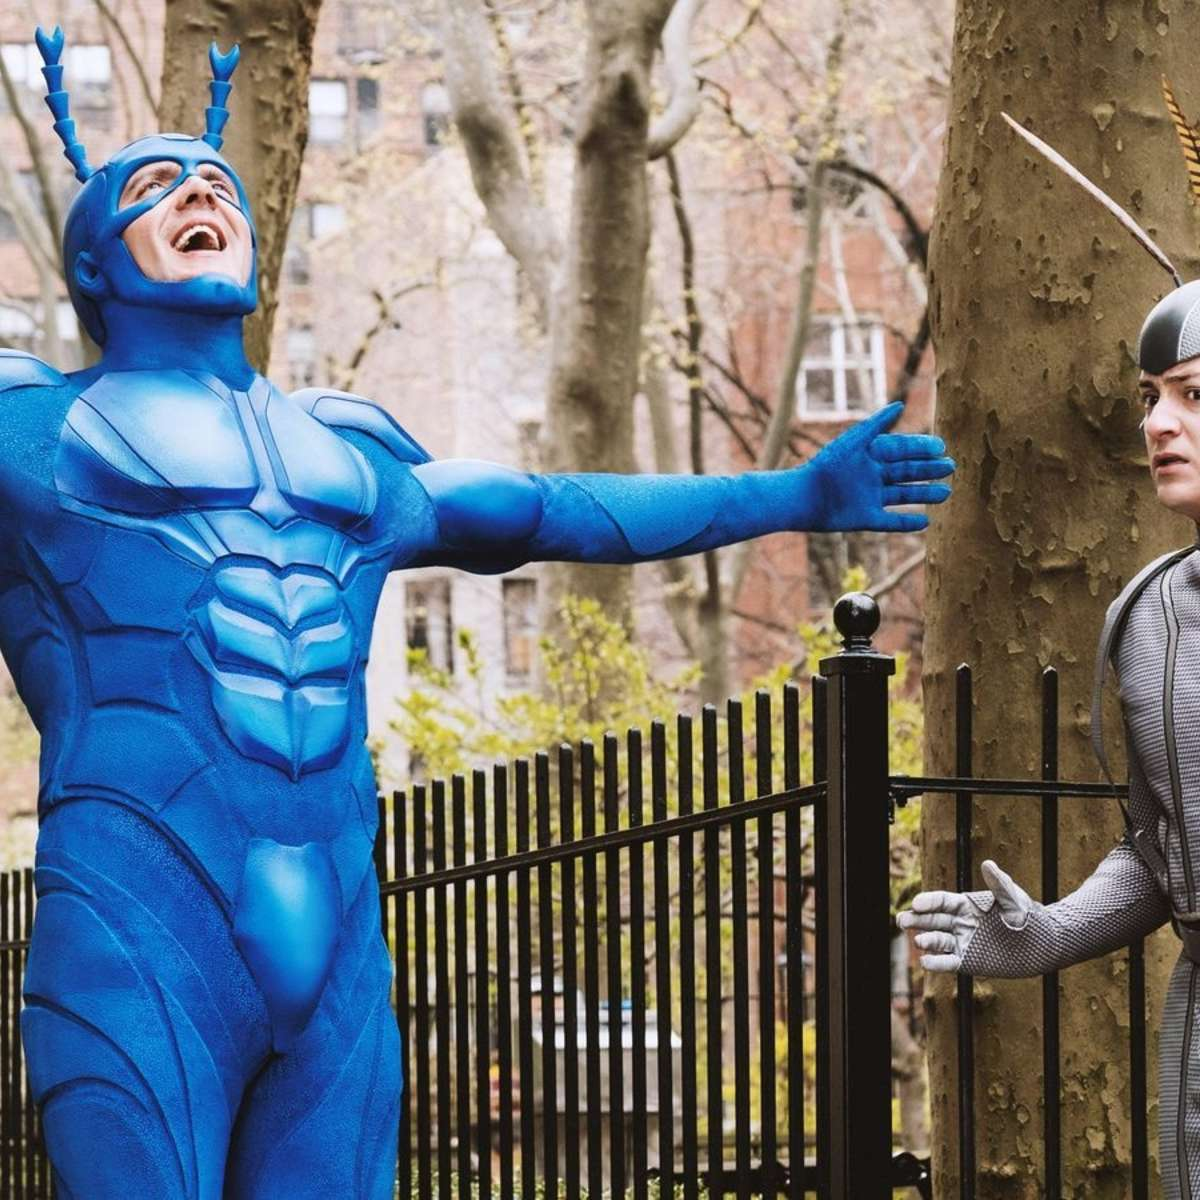 The Tick, Amazon